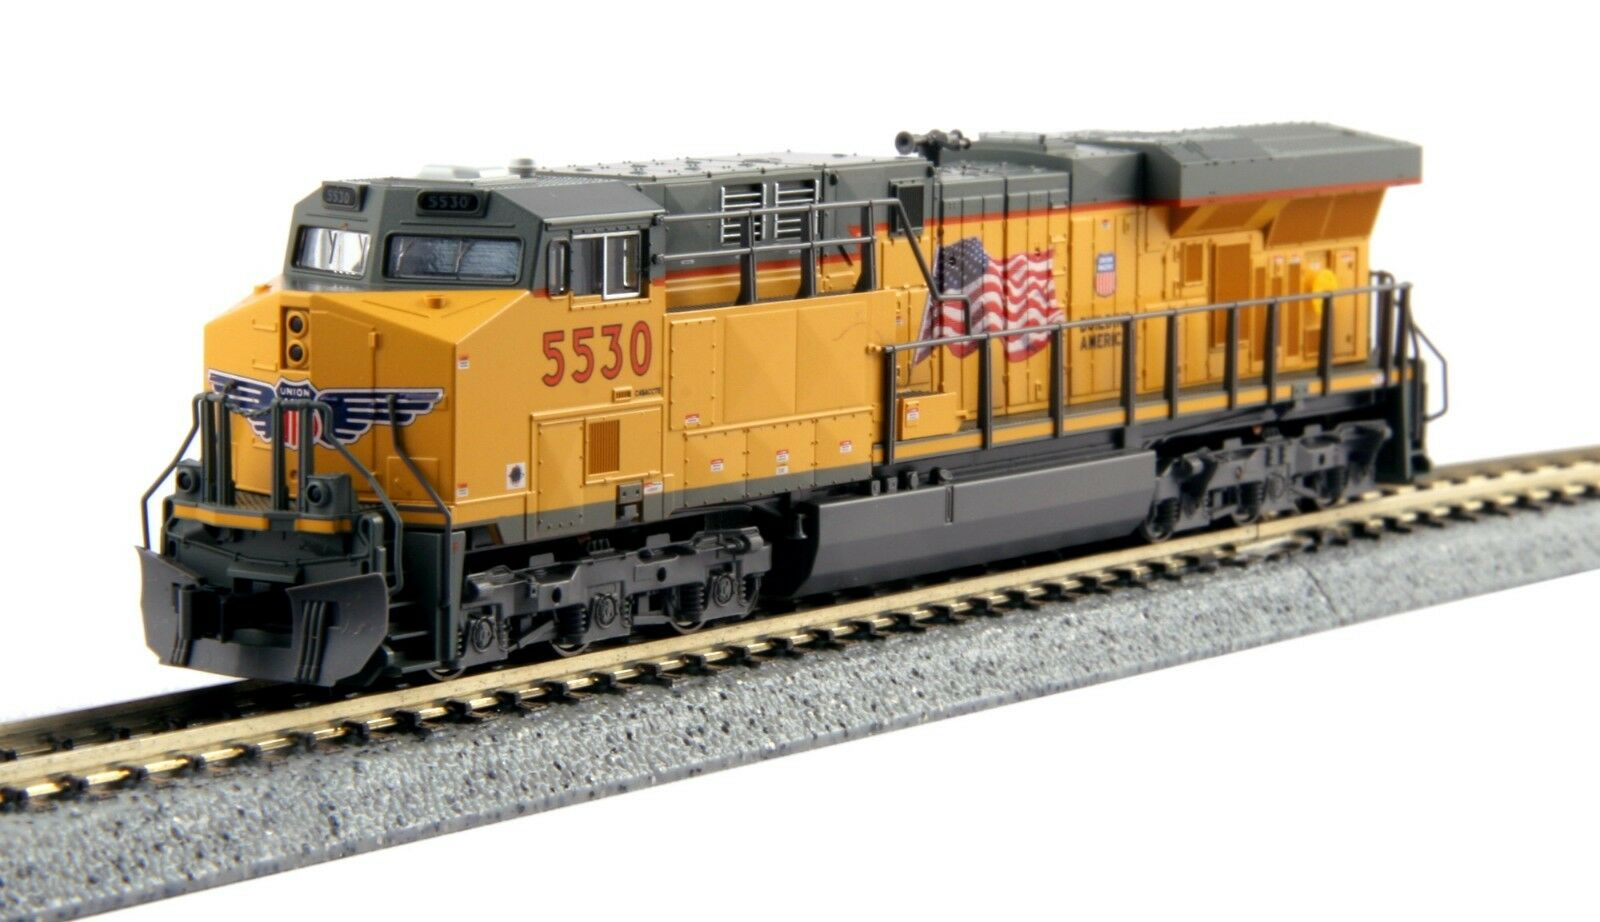 Kato N Scale Gemini exclusivo ES44AC Diesel Union Pacific  5530 Dcc Listo